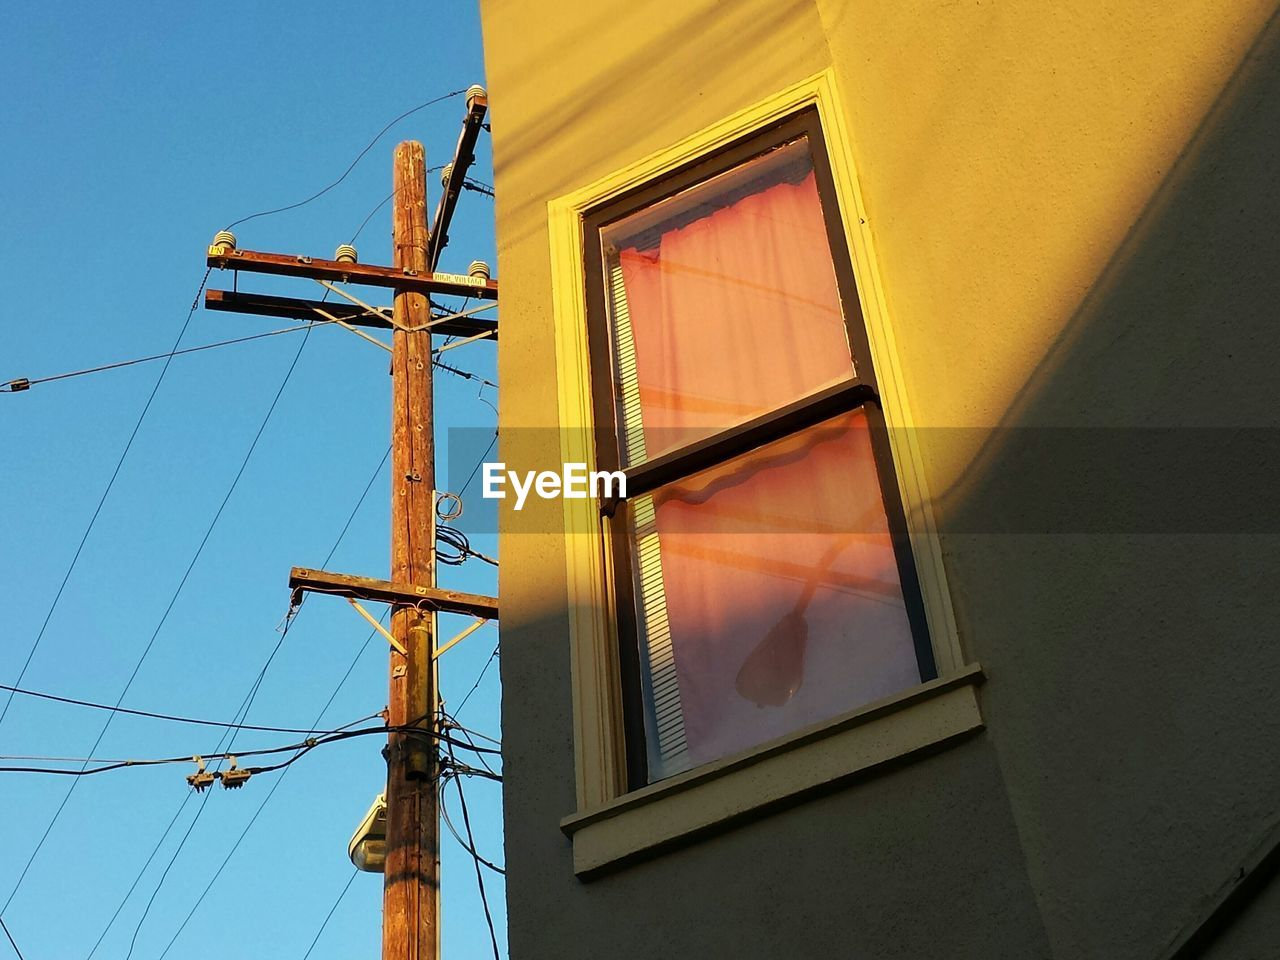 Low angle view of telephone pole by building against sky